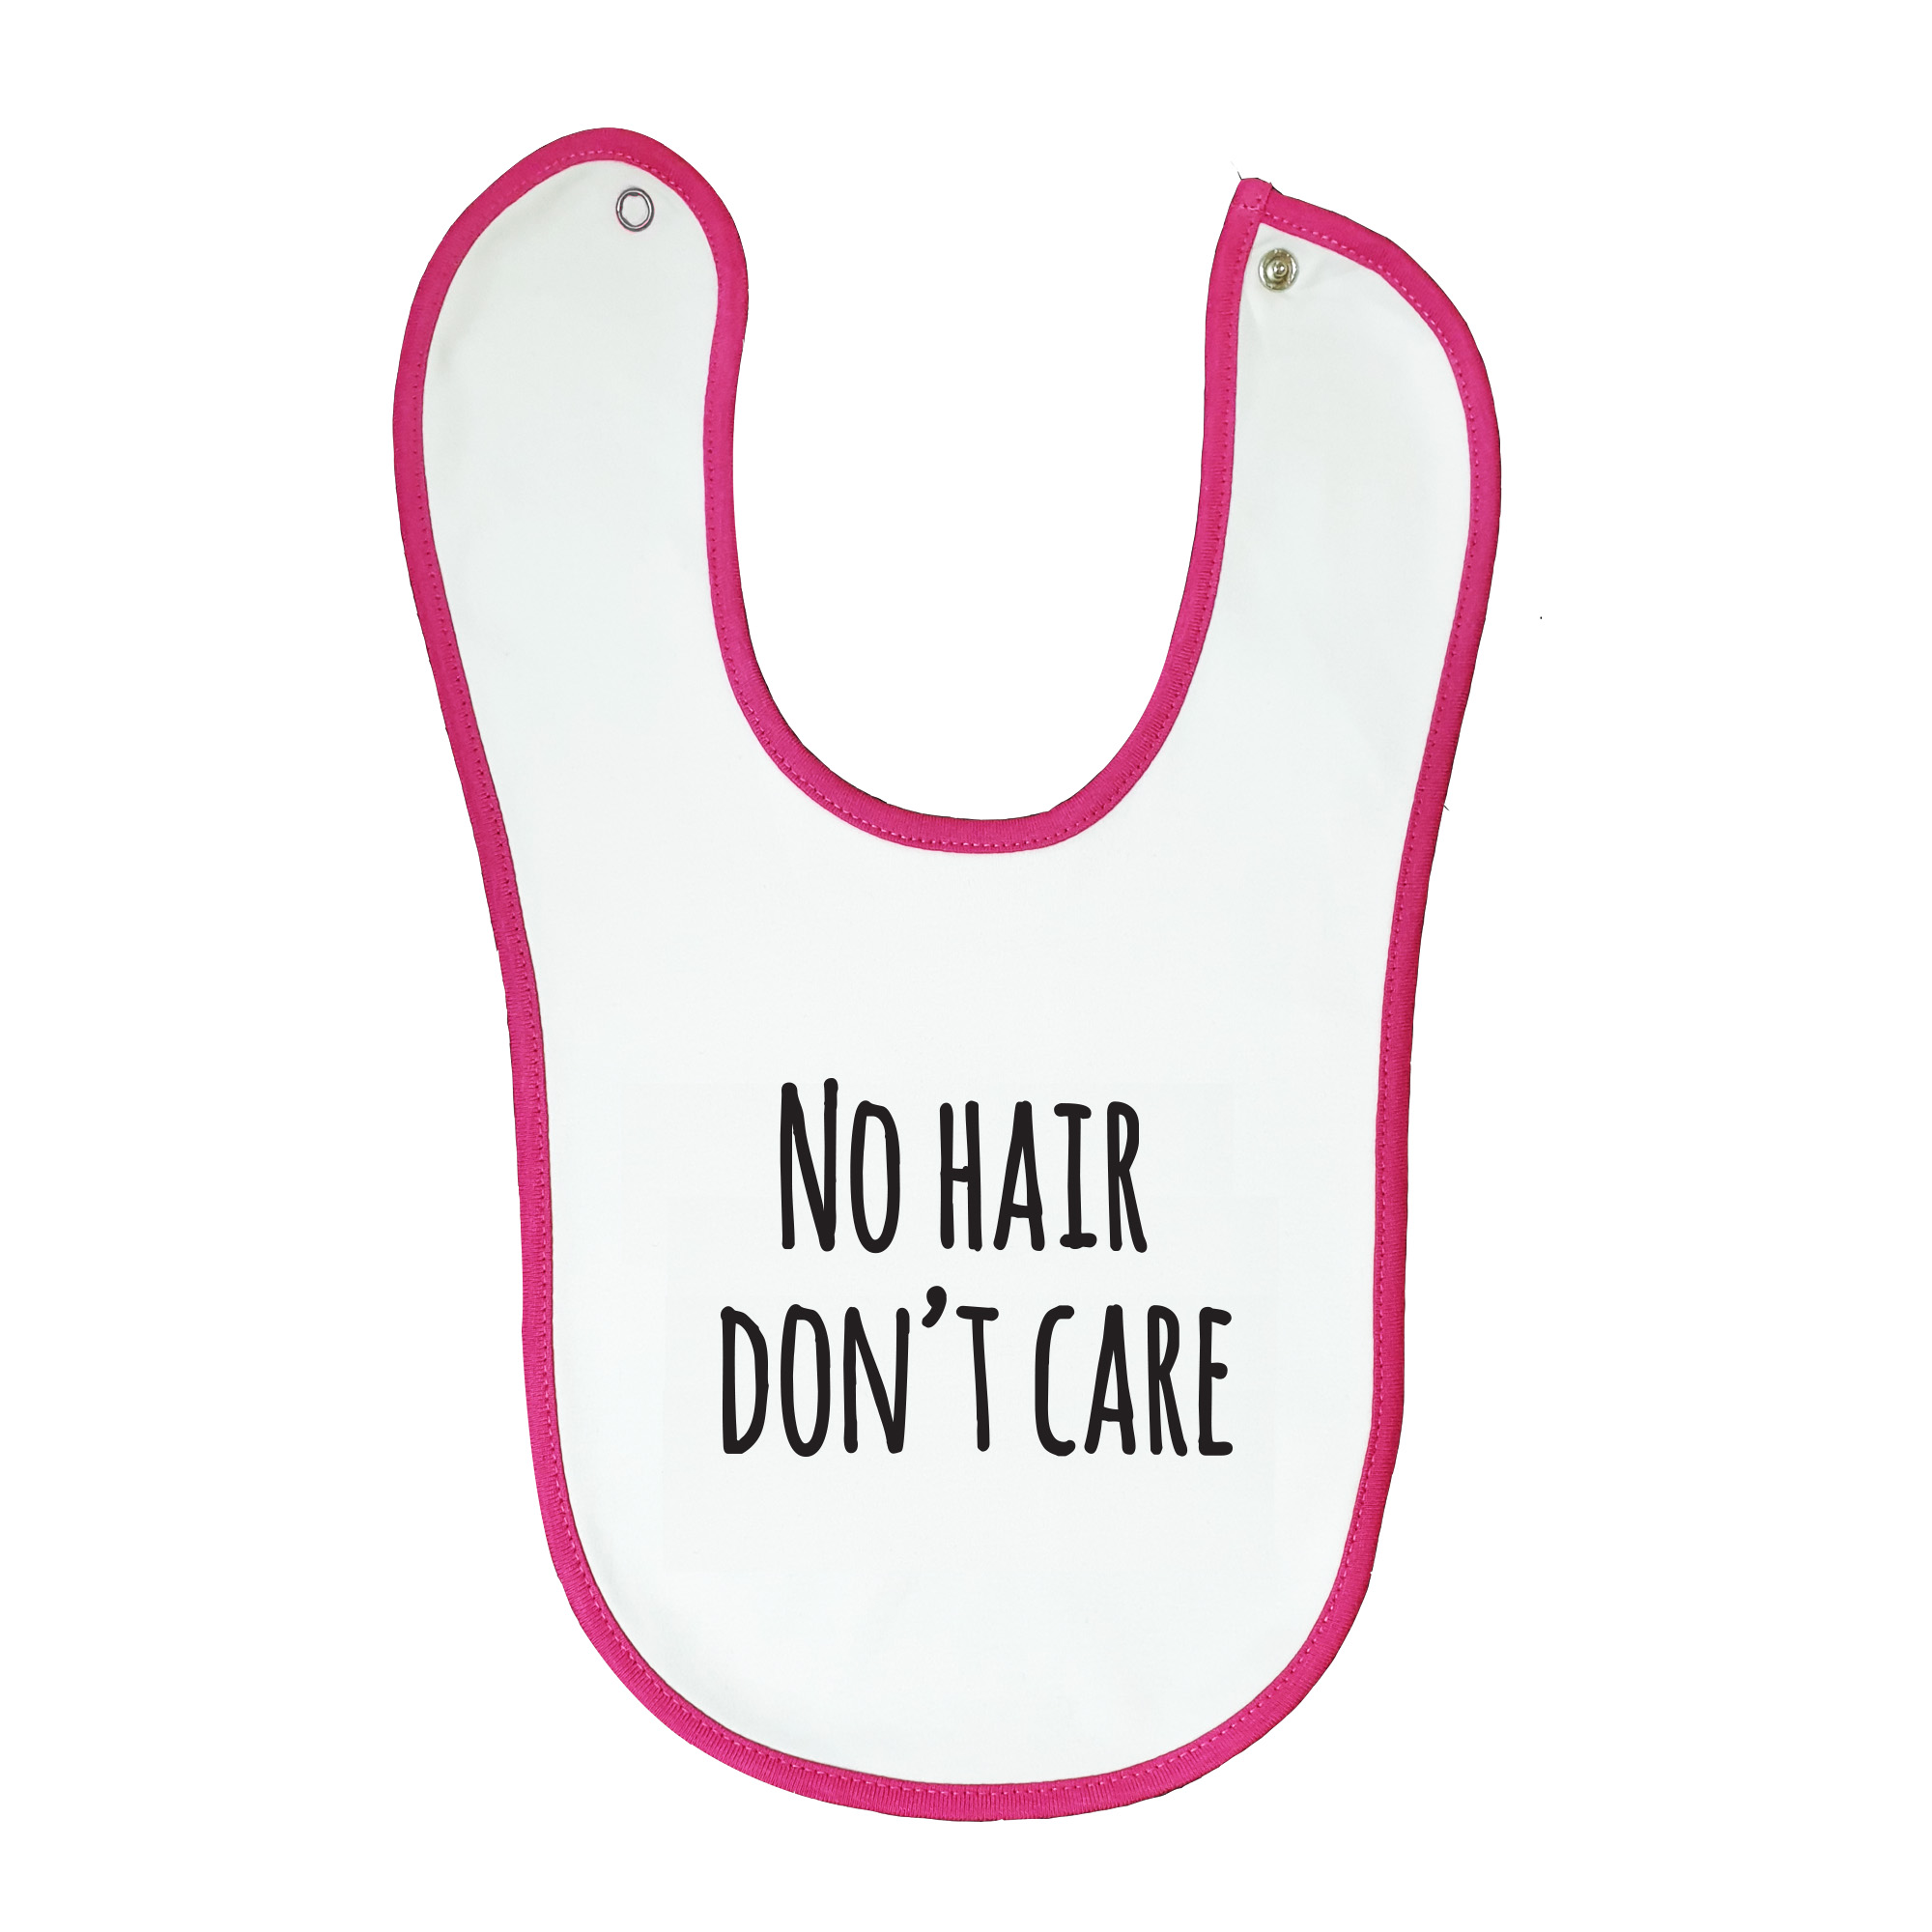 Soft baby bib, white with pink trim, 100% cotton machine washable.Age: 6-12 months.  Print: No Hair Don't Care.